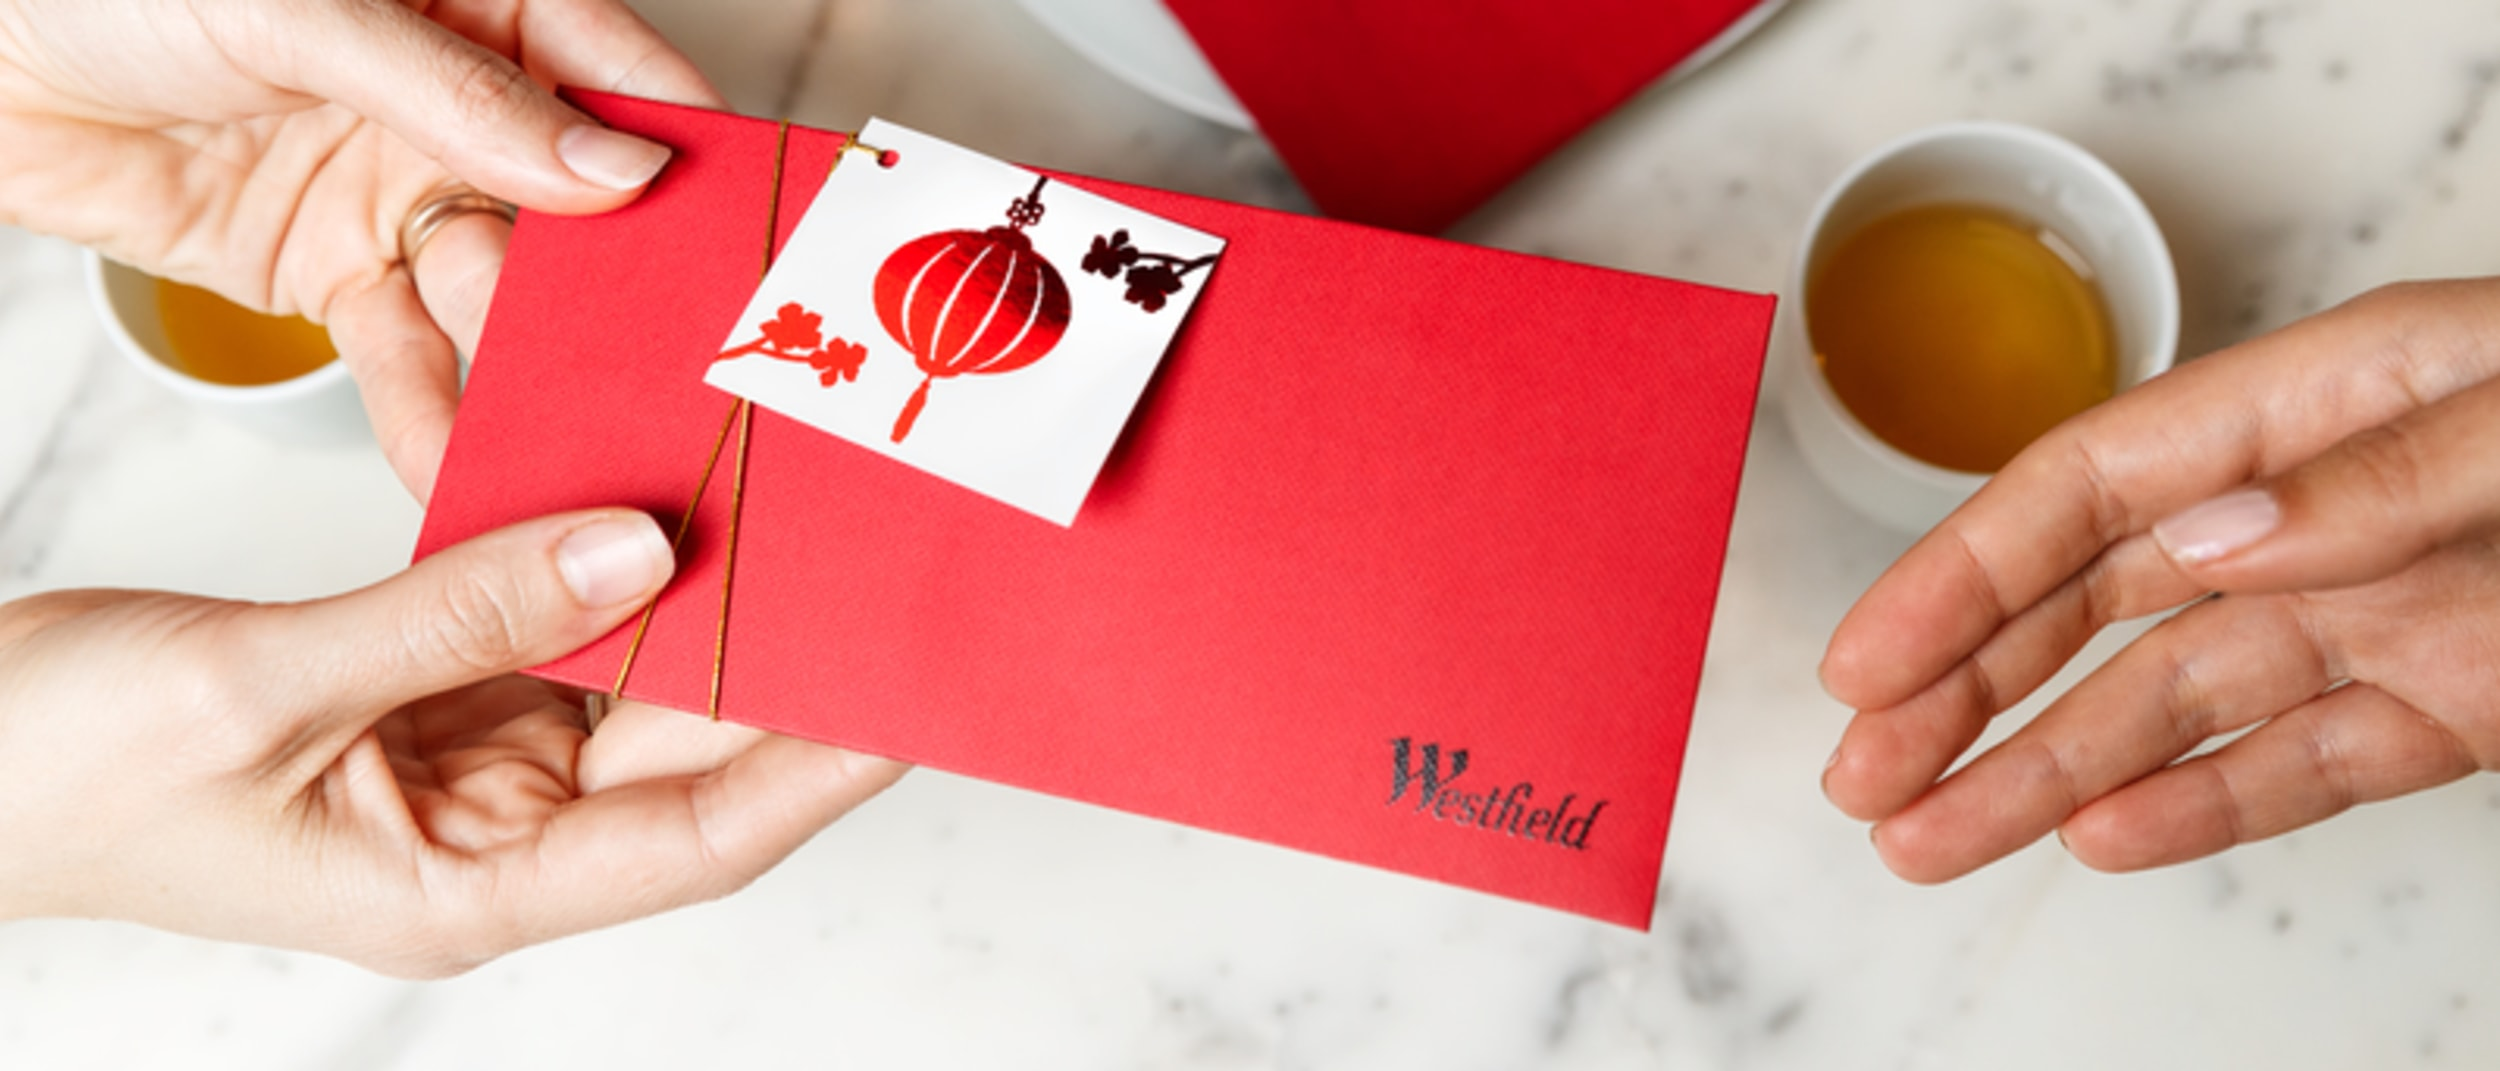 Lunar New Year gift idea: limited edition Westfield gift card tag